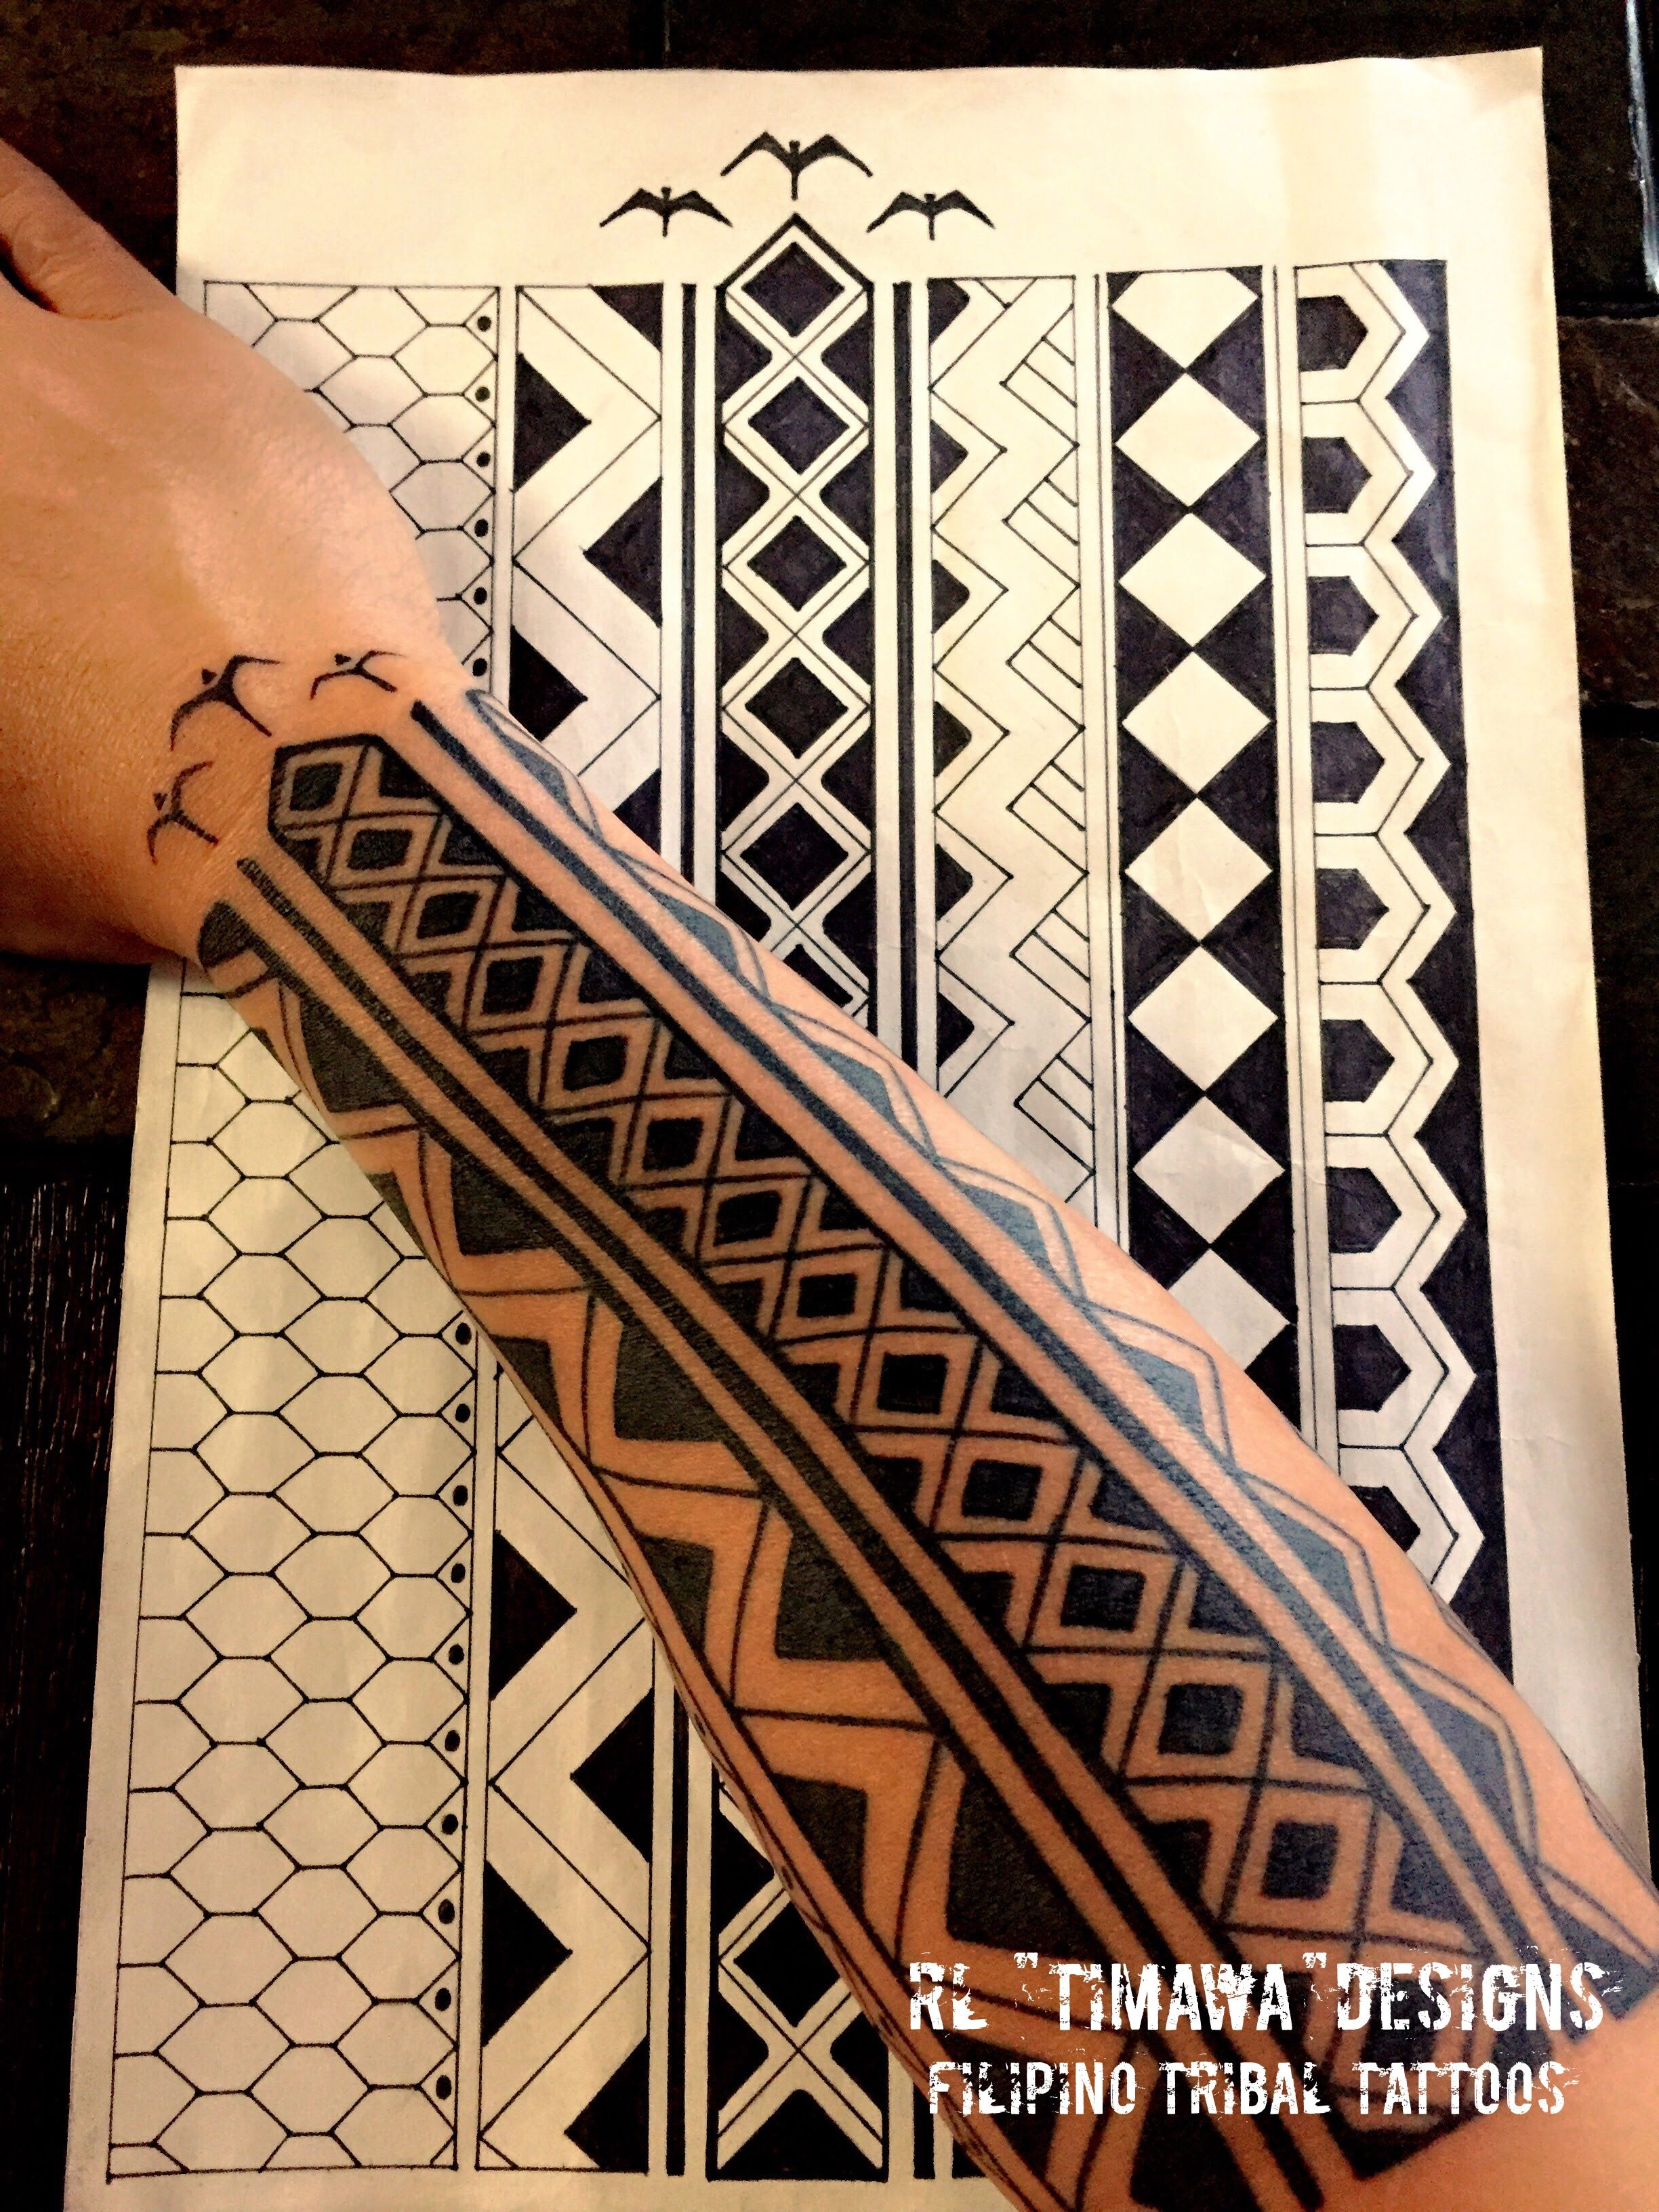 a6a5ccfb1 Contemporary Filipino Tribal Tattoo designs #filipinotattoossymbols  Filipino Tattoos, Maori, Hawaiian Tattoo, Samoan